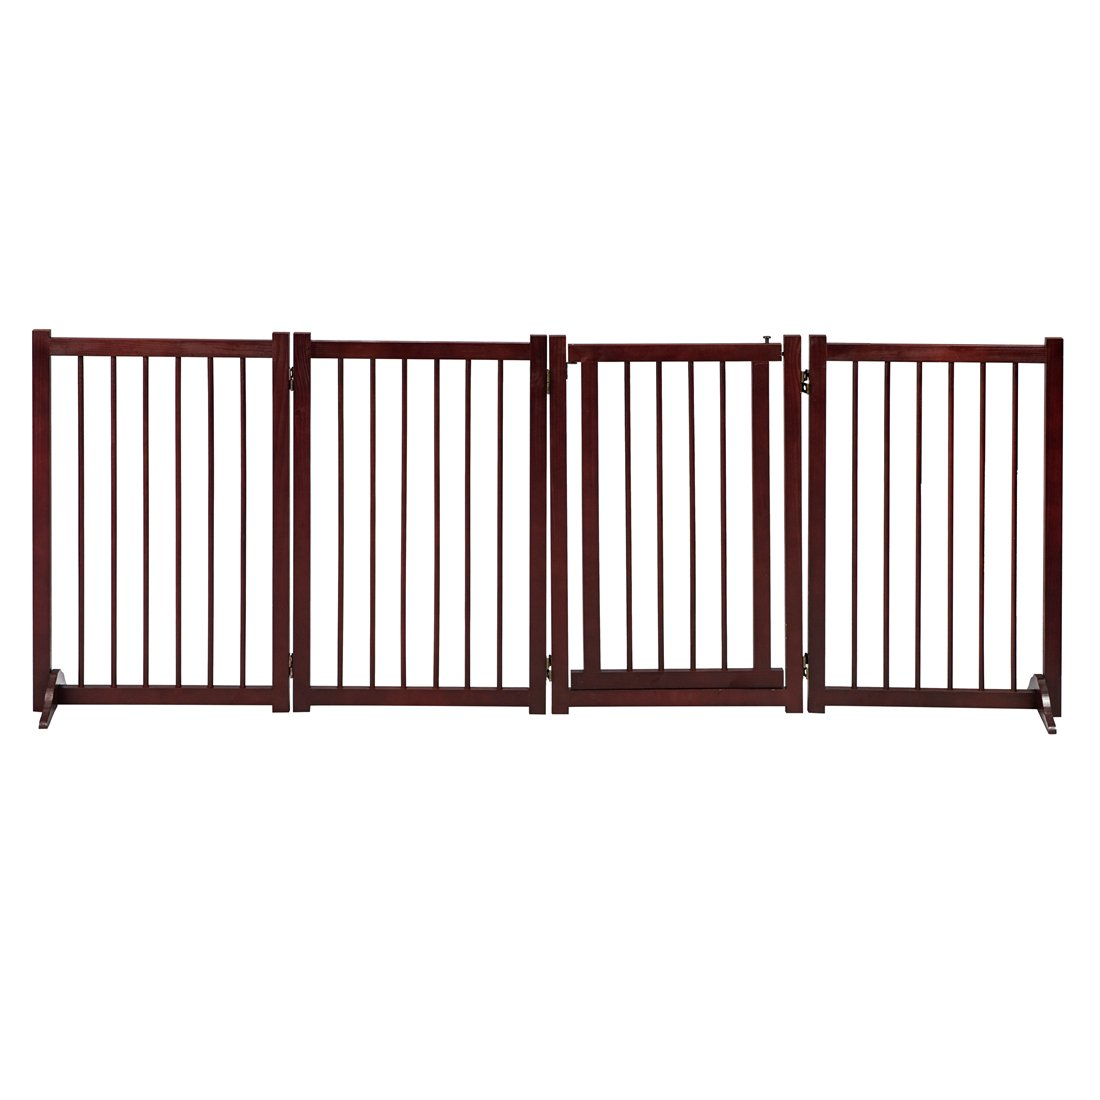 GOOD LIFE 81 Inch Wooden Pet Gate with Walk Through Door Adjustable Freestanding Fence Folding Dog Gate 4 Panel Coffee Color PET343 by GOOD LIFE USA (Image #2)